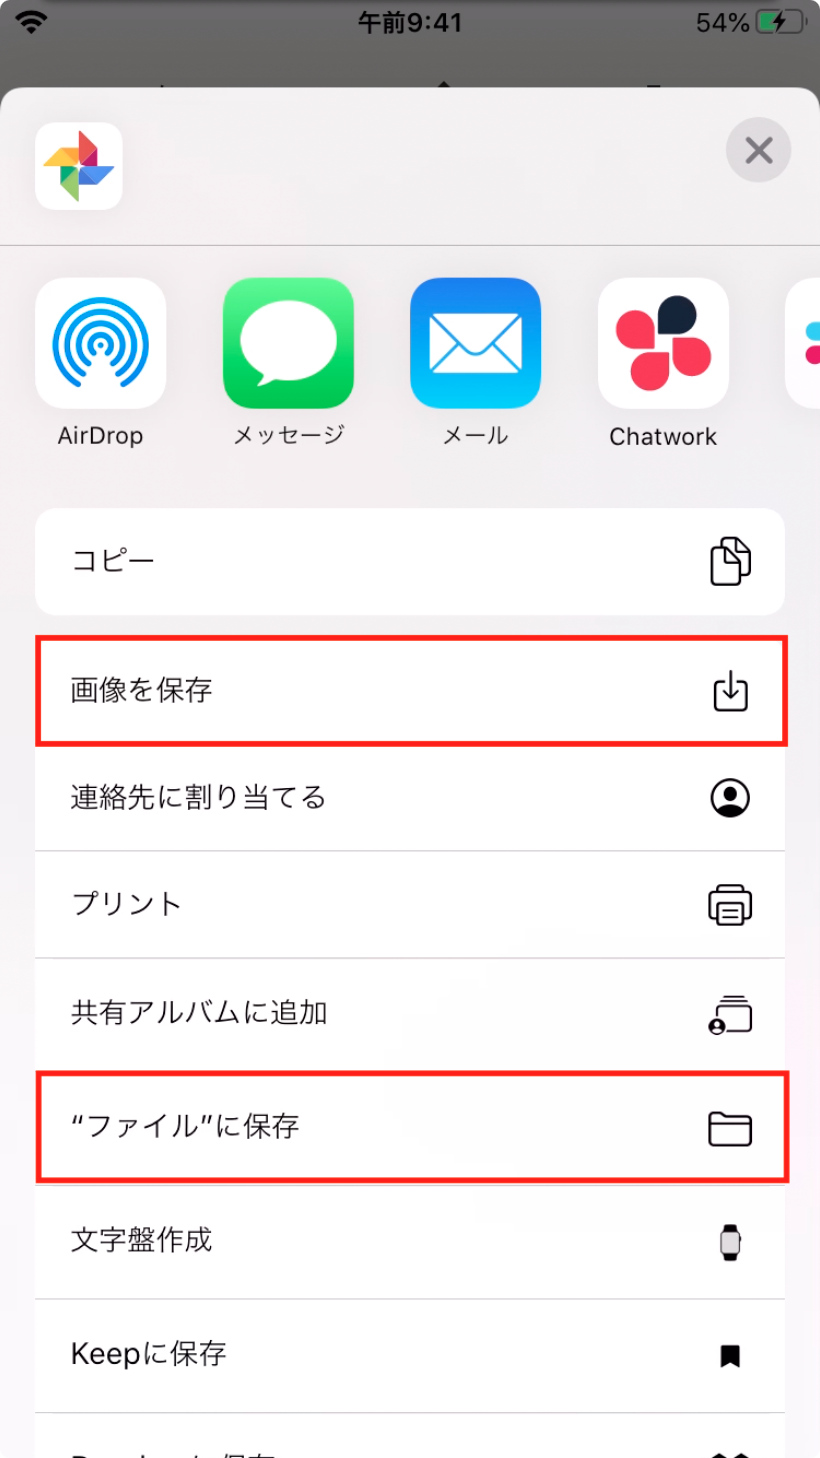 iPhone/iPadの場合